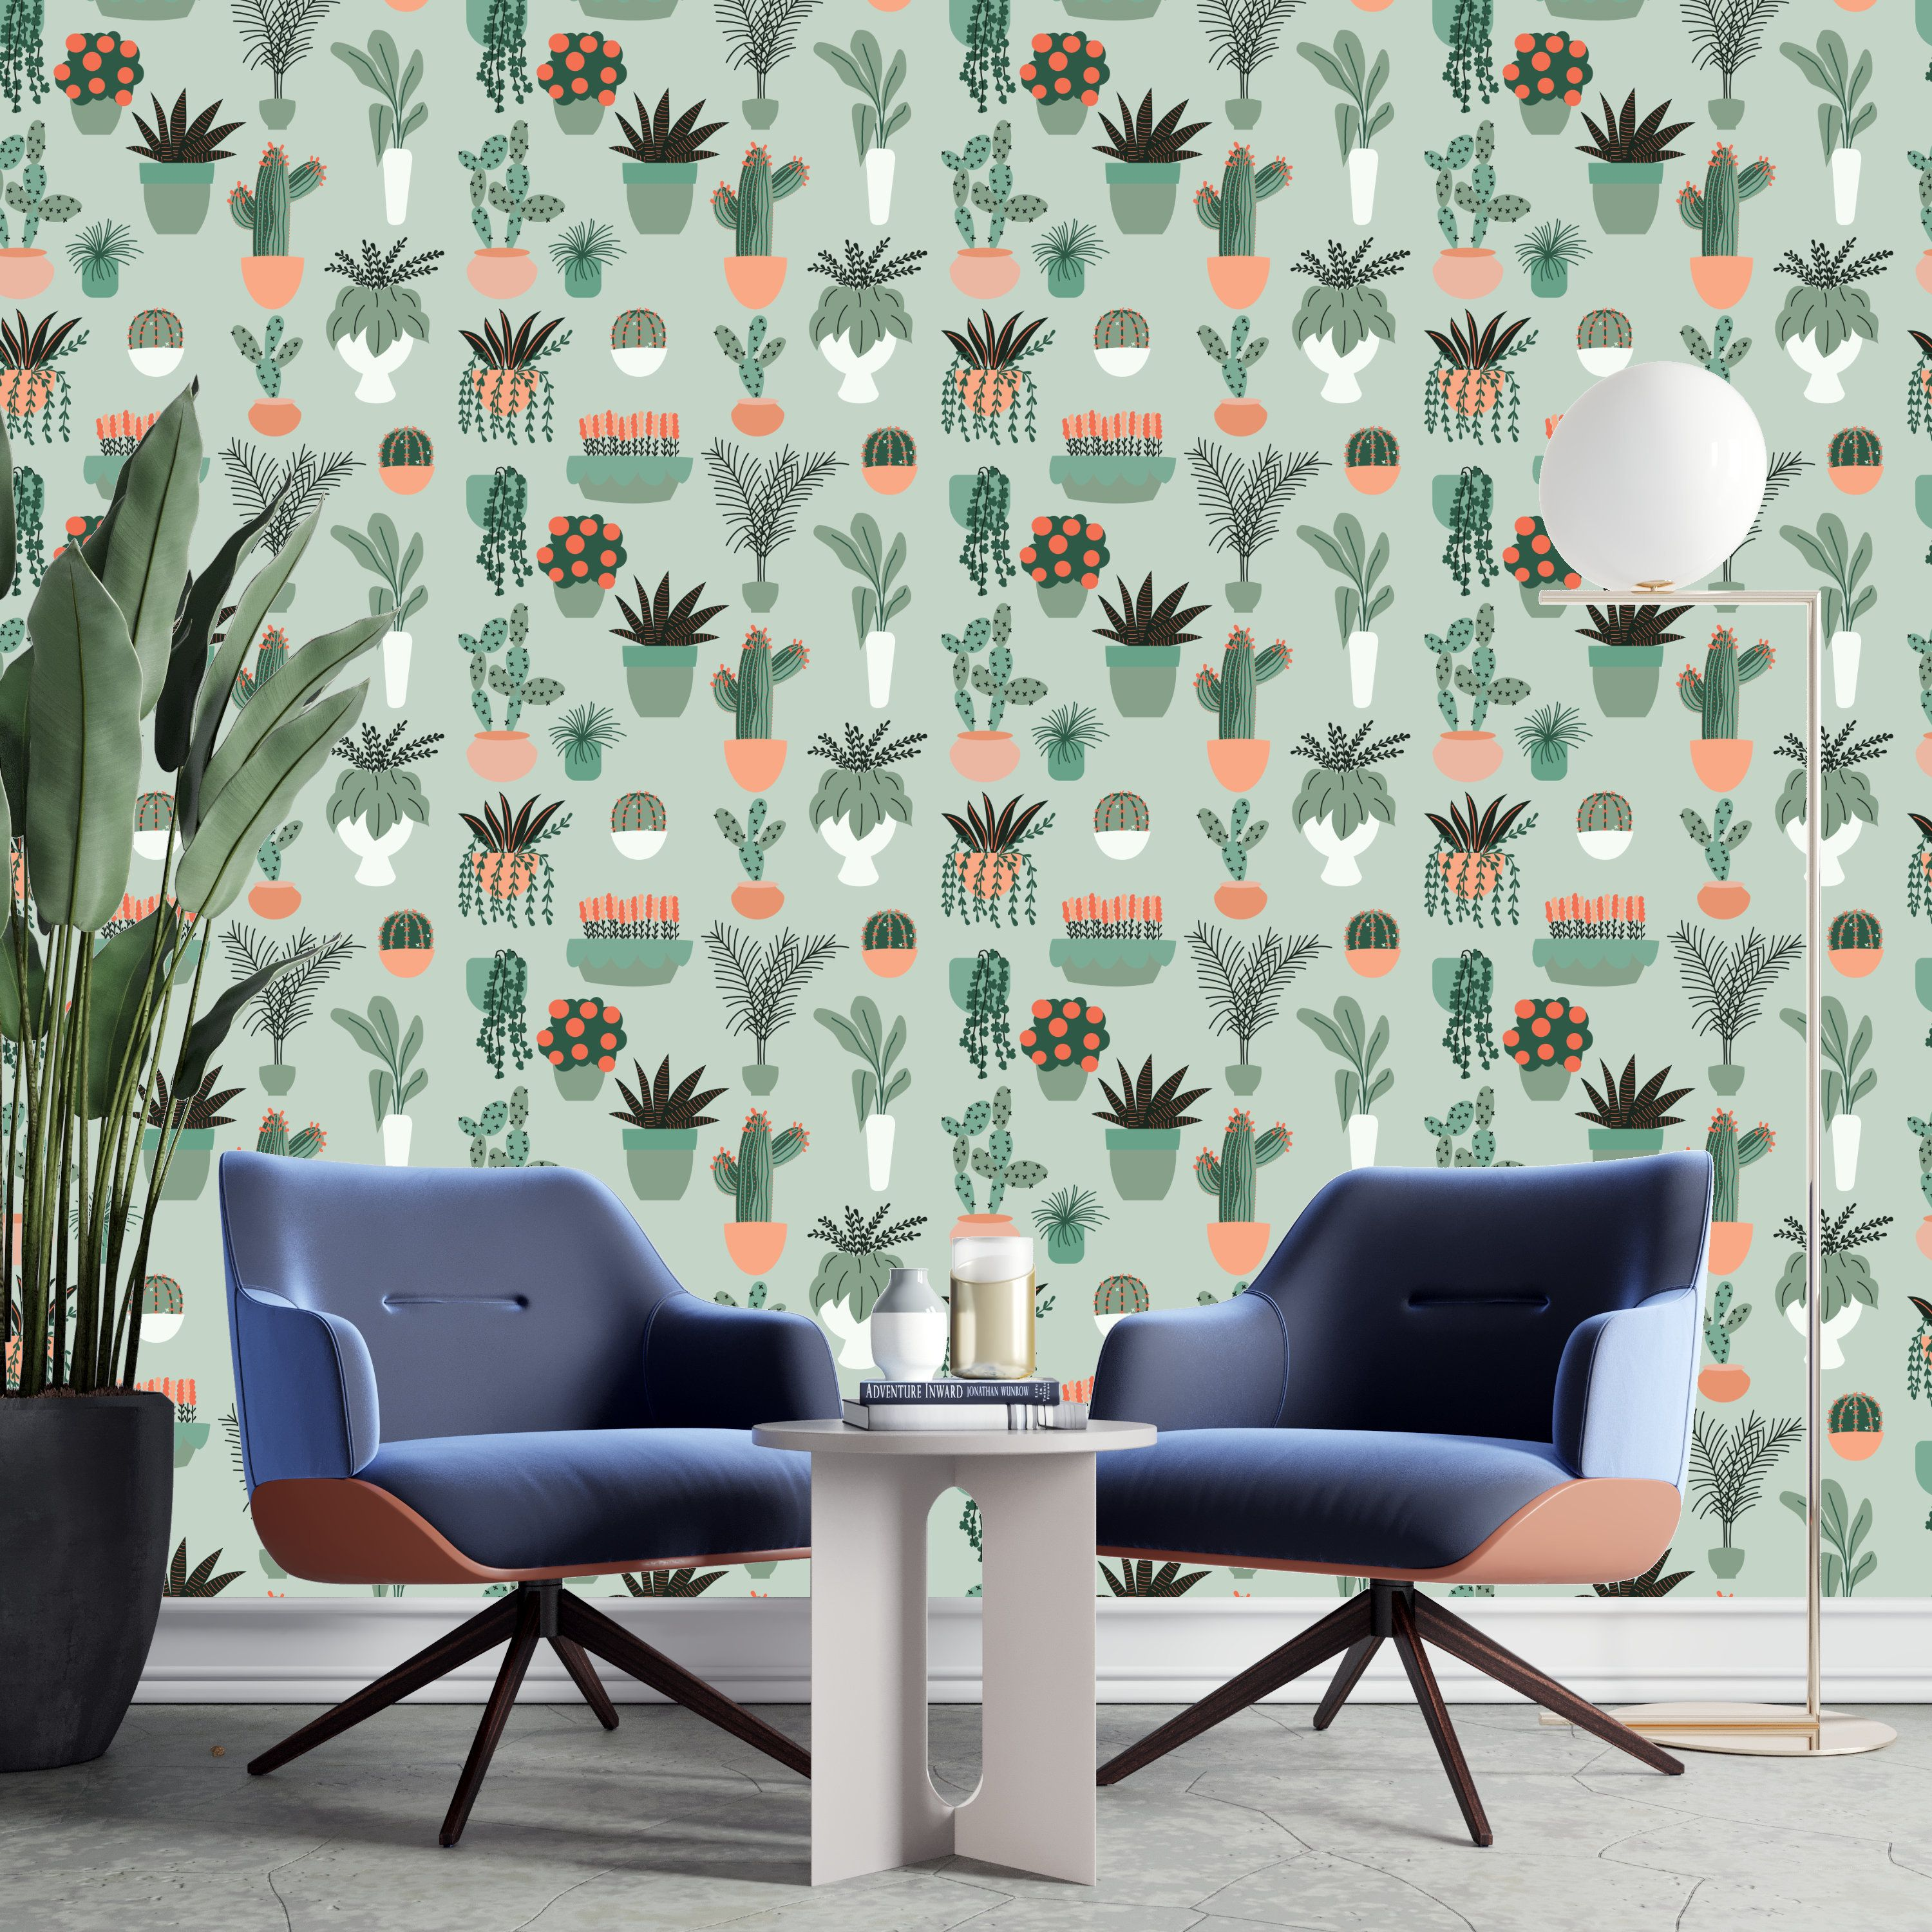 Removable Green Cactus Floral Peel And Stick Wallpaper Etsy Home Wallpaper Floral Wallpaper Textured Walls